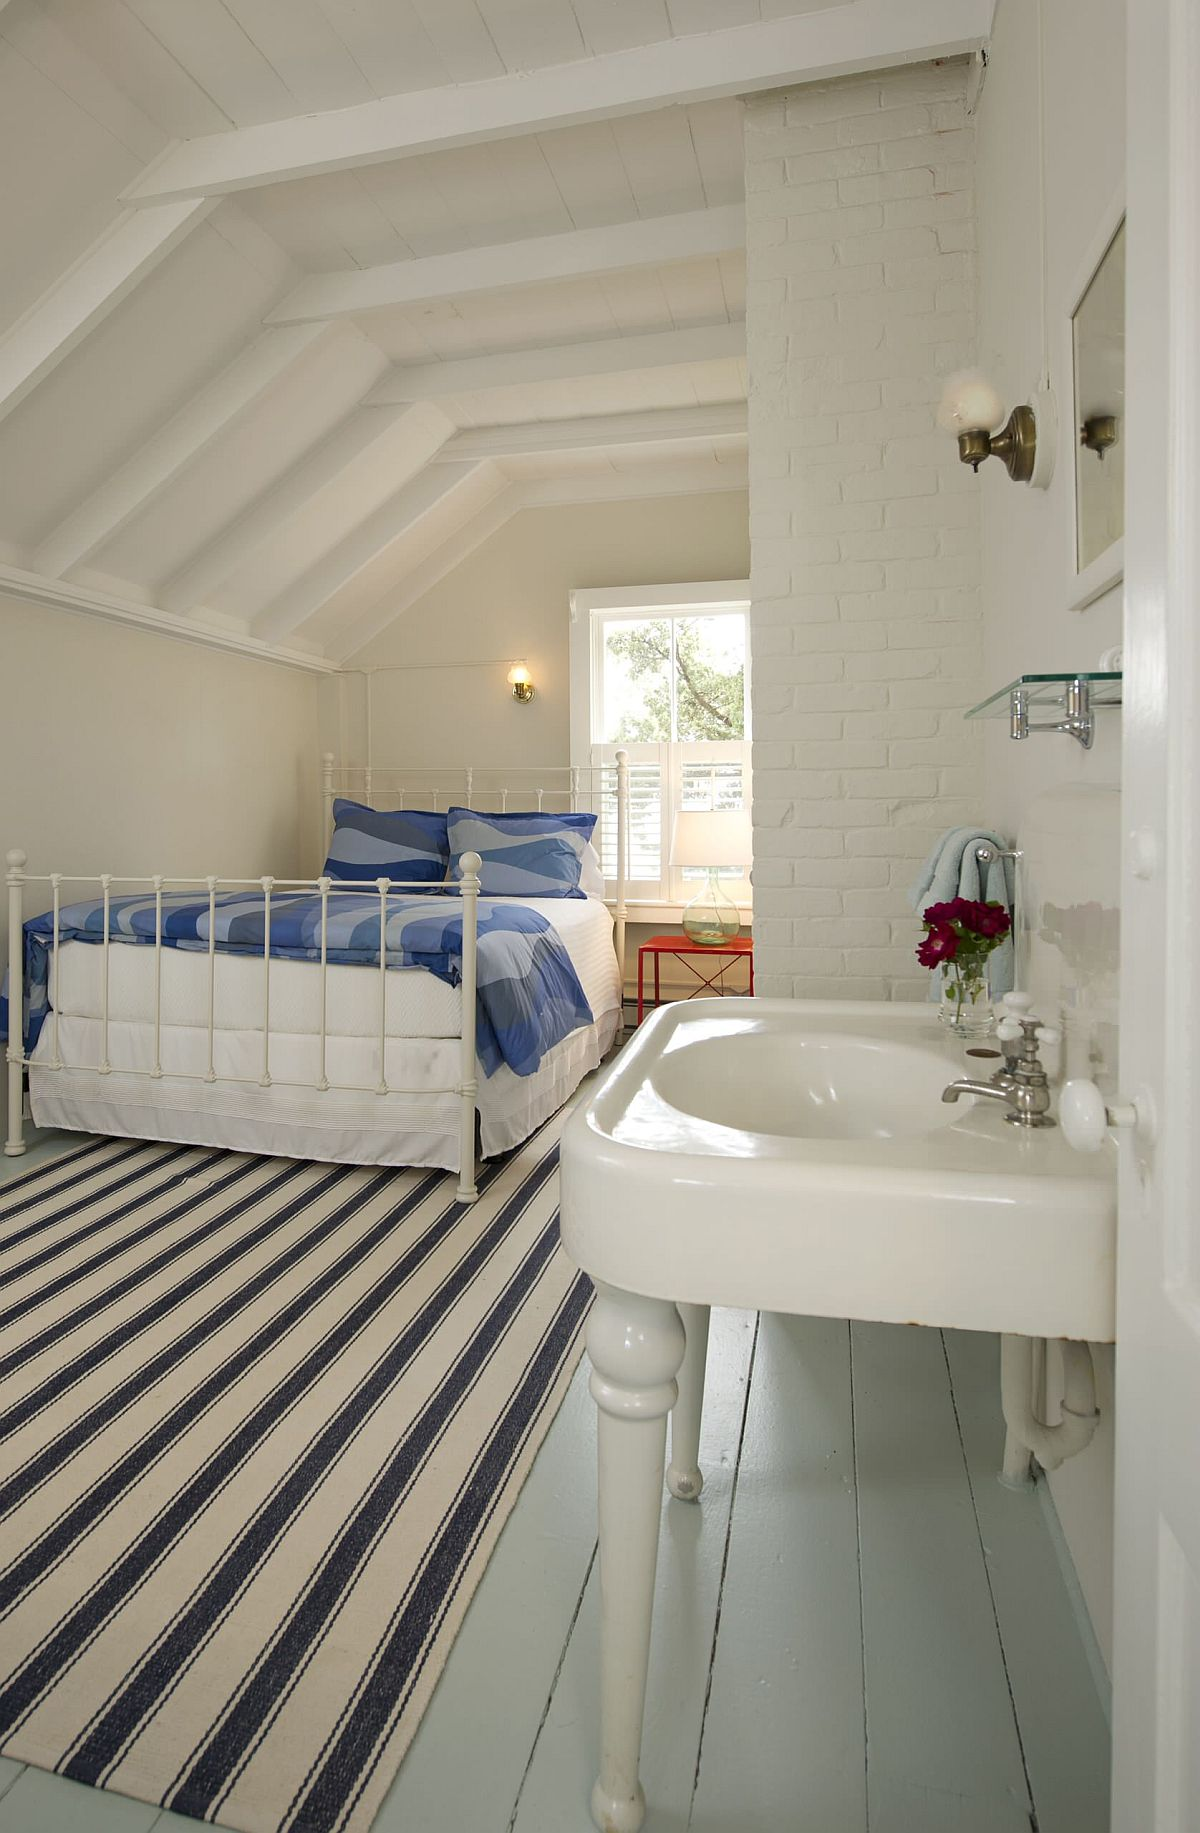 Light blue painted wood floor along with striped rug adds color to the fabulous beach style bedroom